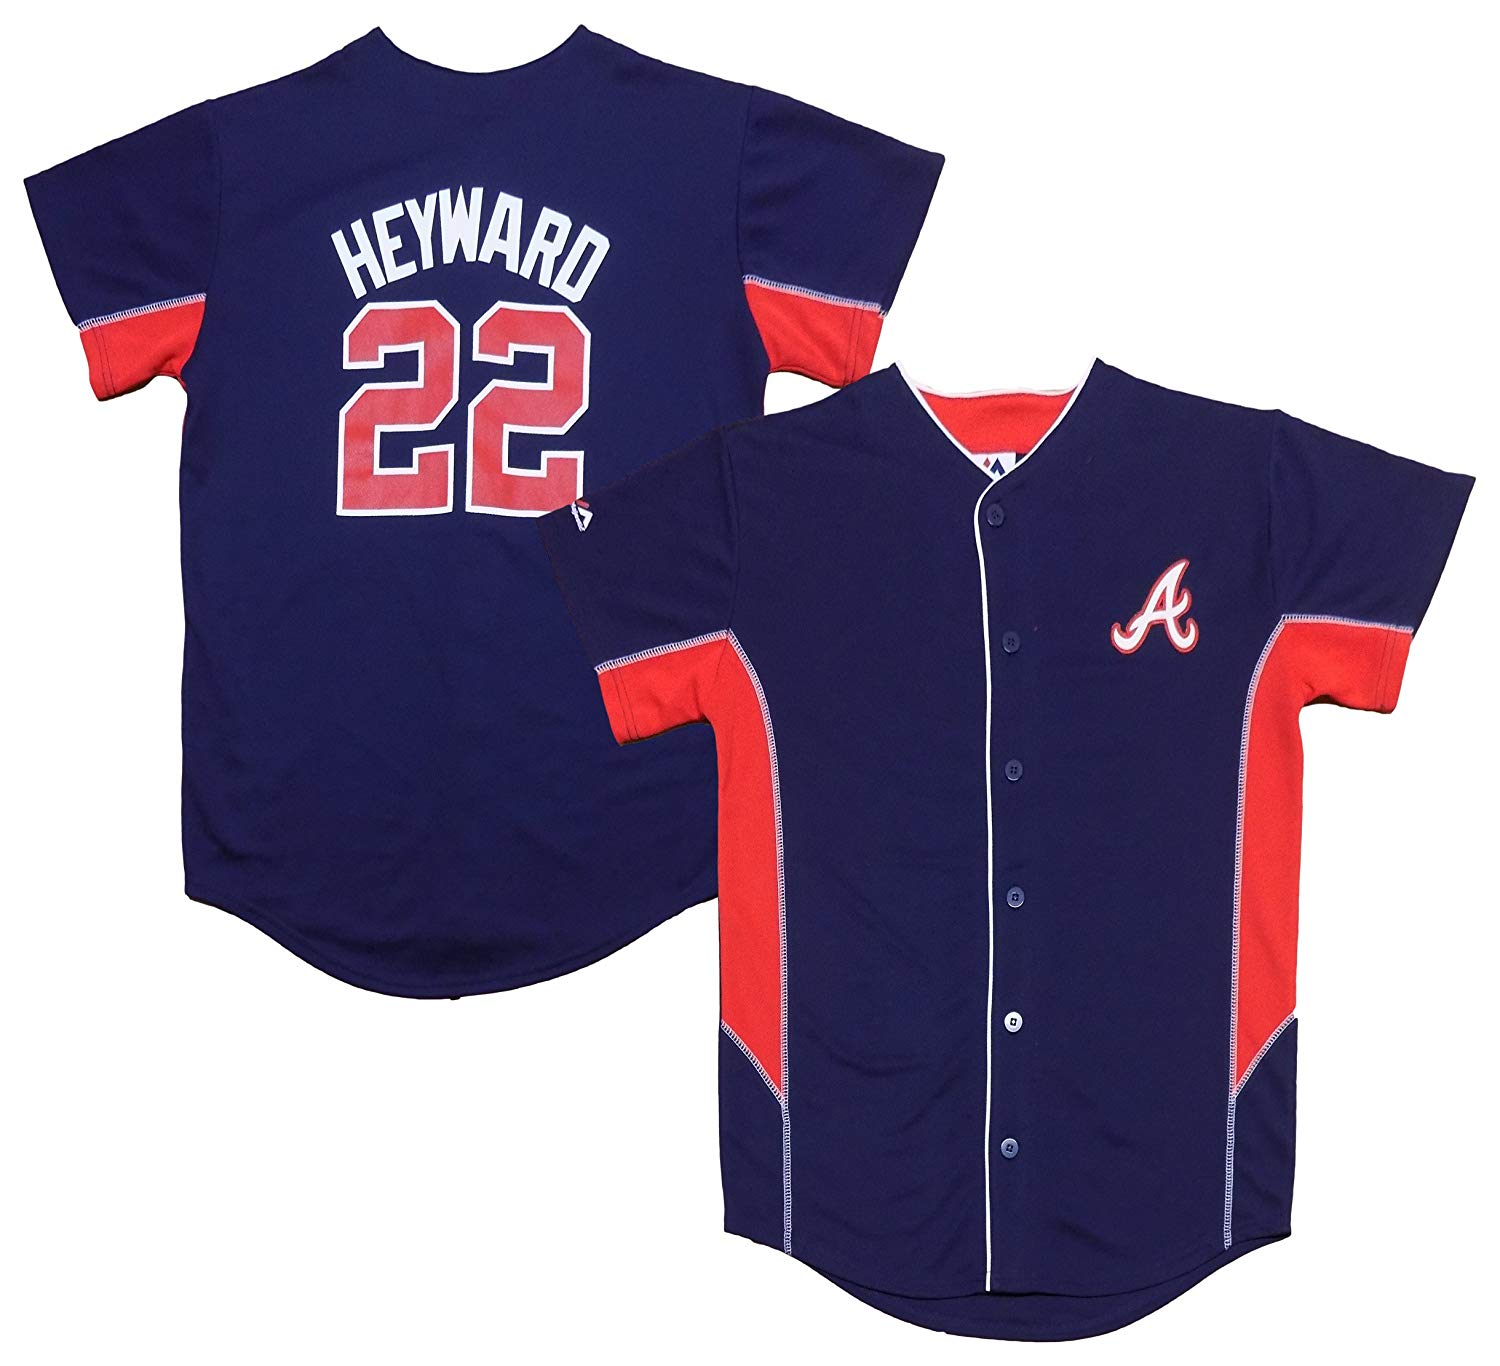 separation shoes 975e9 7a182 Cheap Atlanta Braves Jersey Cheap, find Atlanta Braves ...